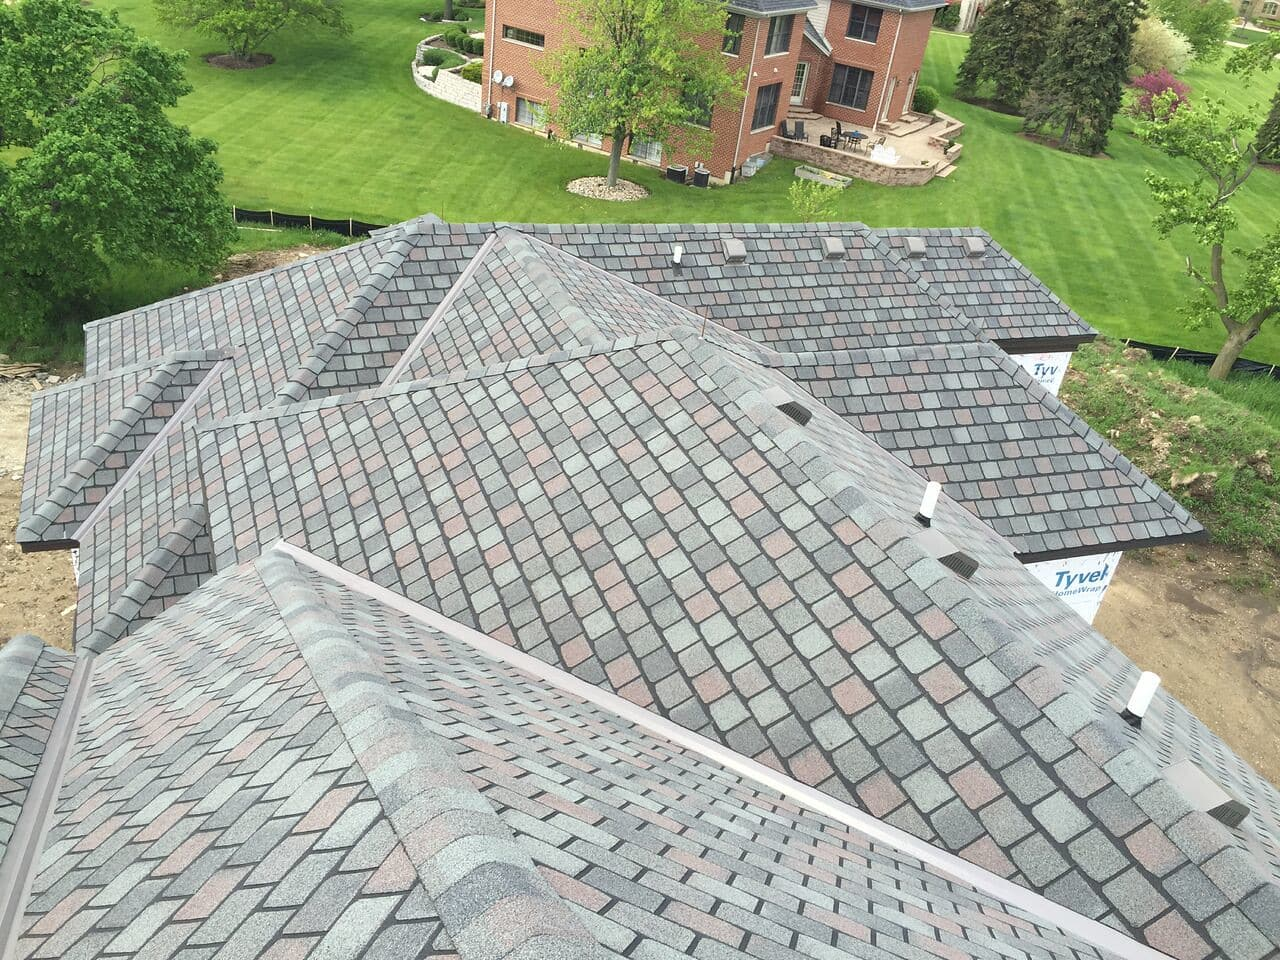 Advantages and Disadvantages of Installing a Shingle Roof